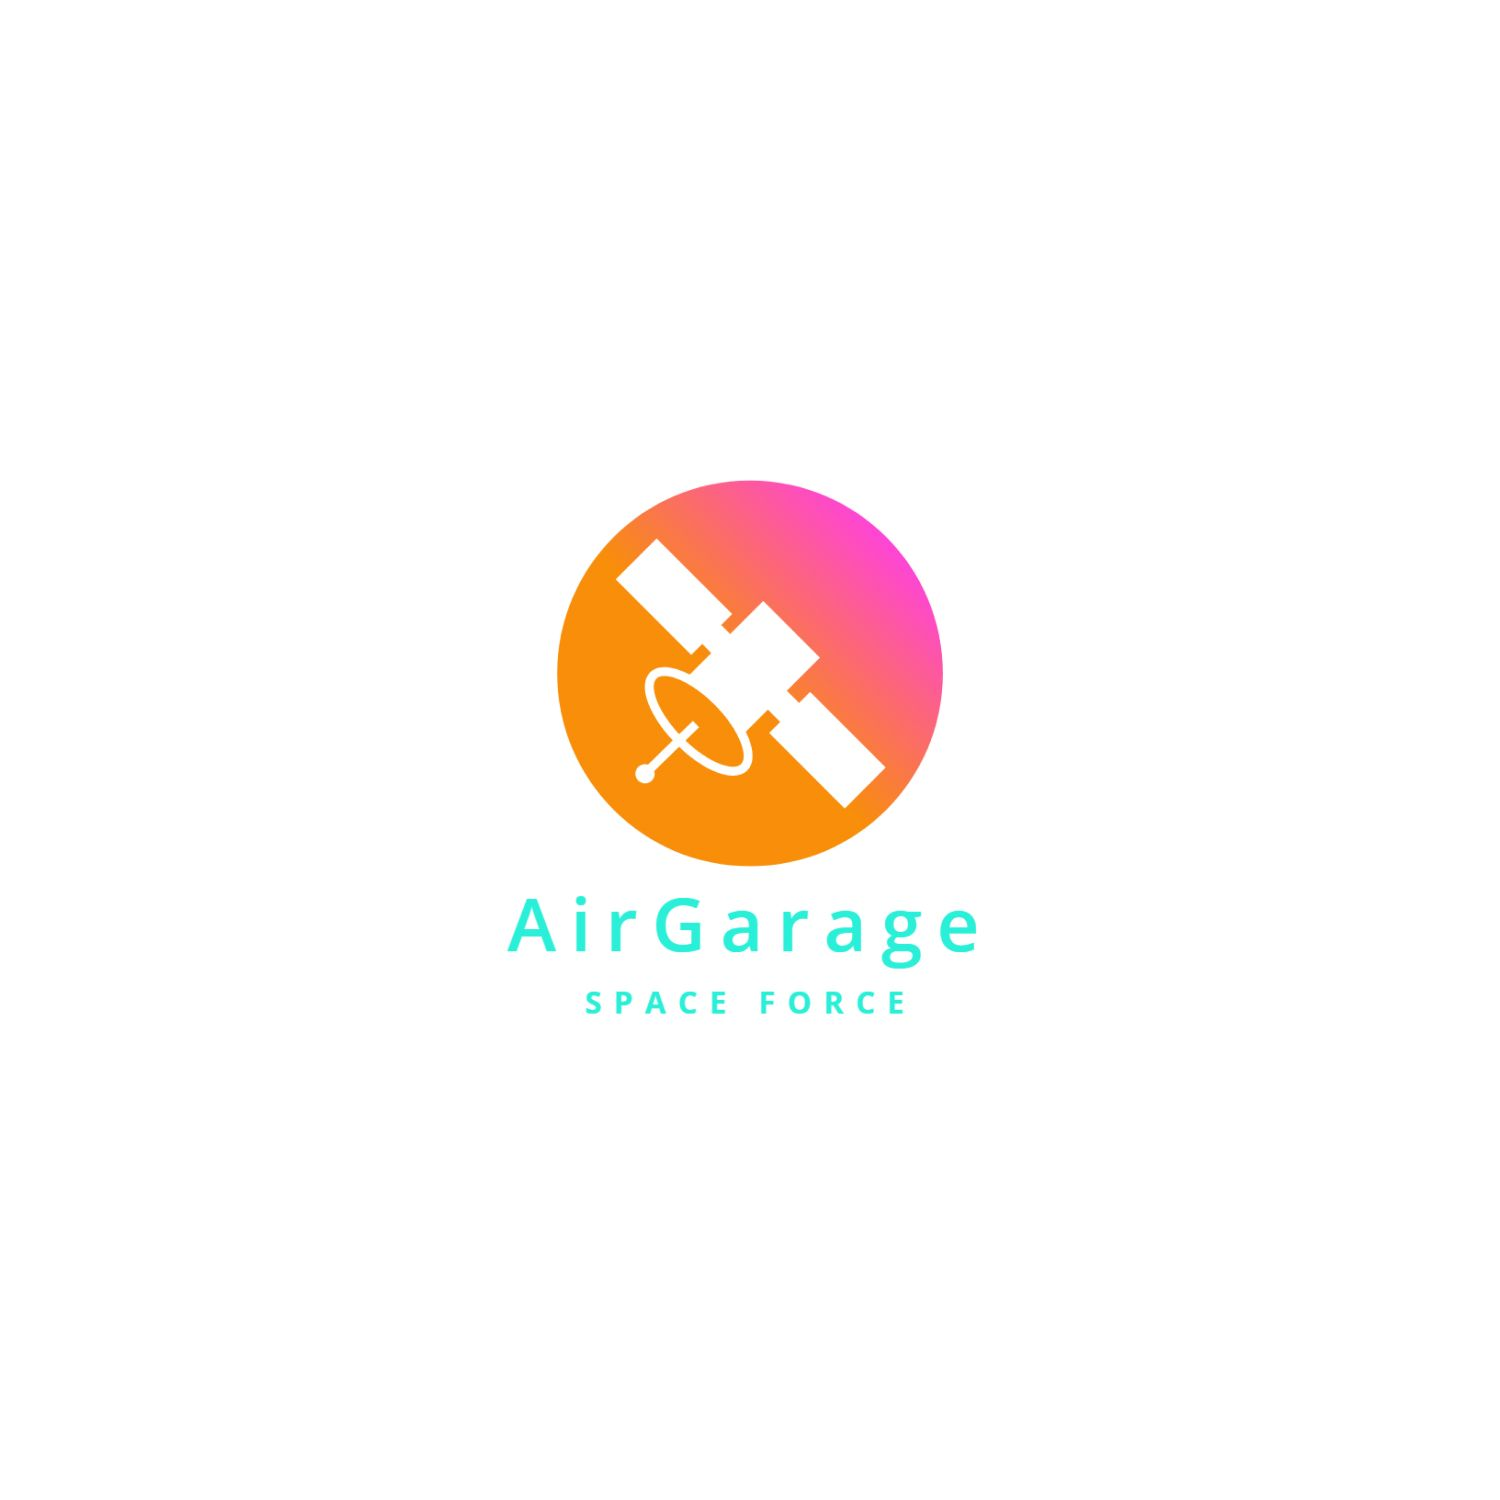 AirGarage Space Force